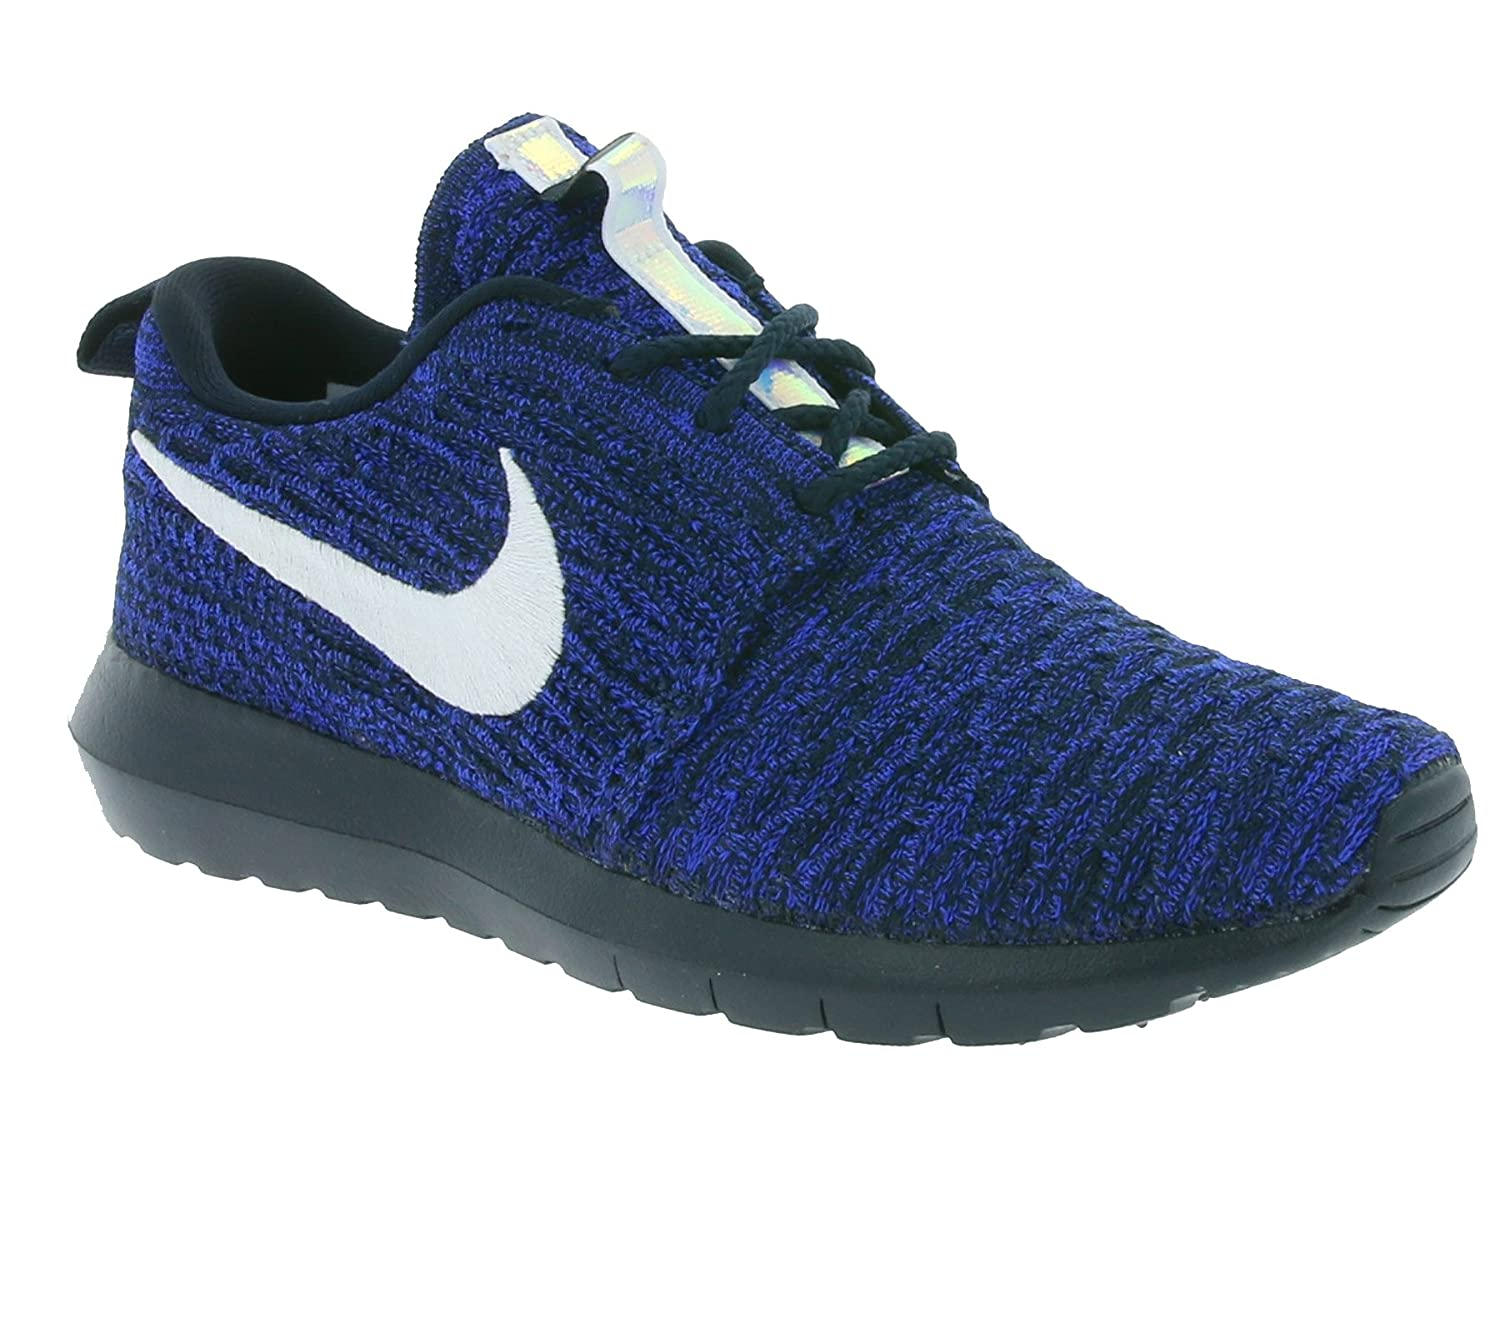 NIKE Womens Roshe One Flyknit Flyknit Colorblock Running Shoes B01ITYG89K 36.5 M EU|Blau